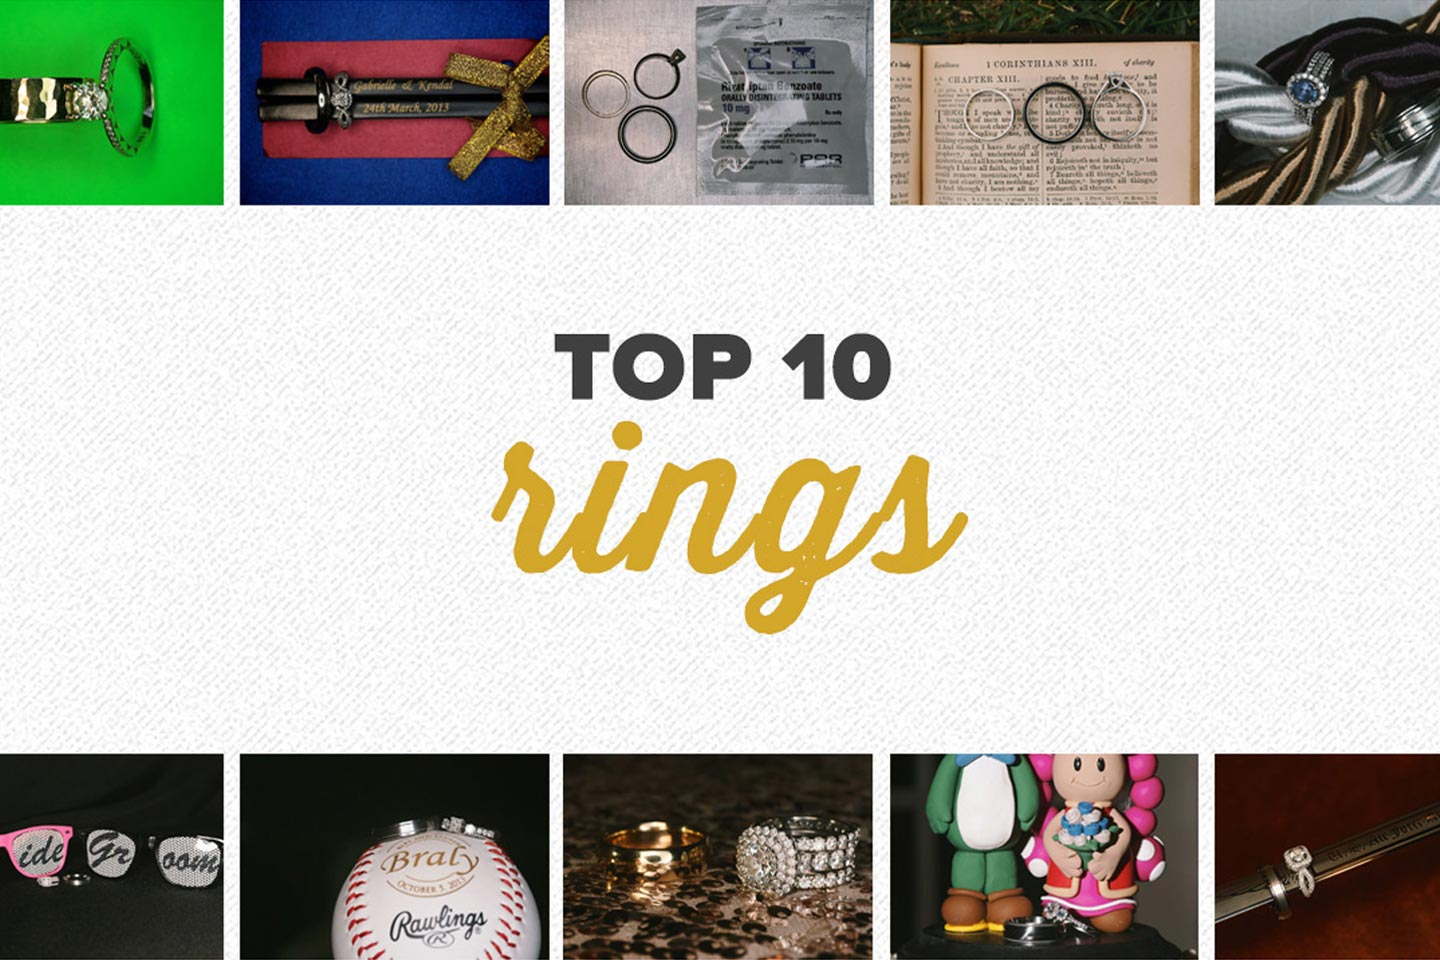 11815Top 10 2013 | Ring Photos